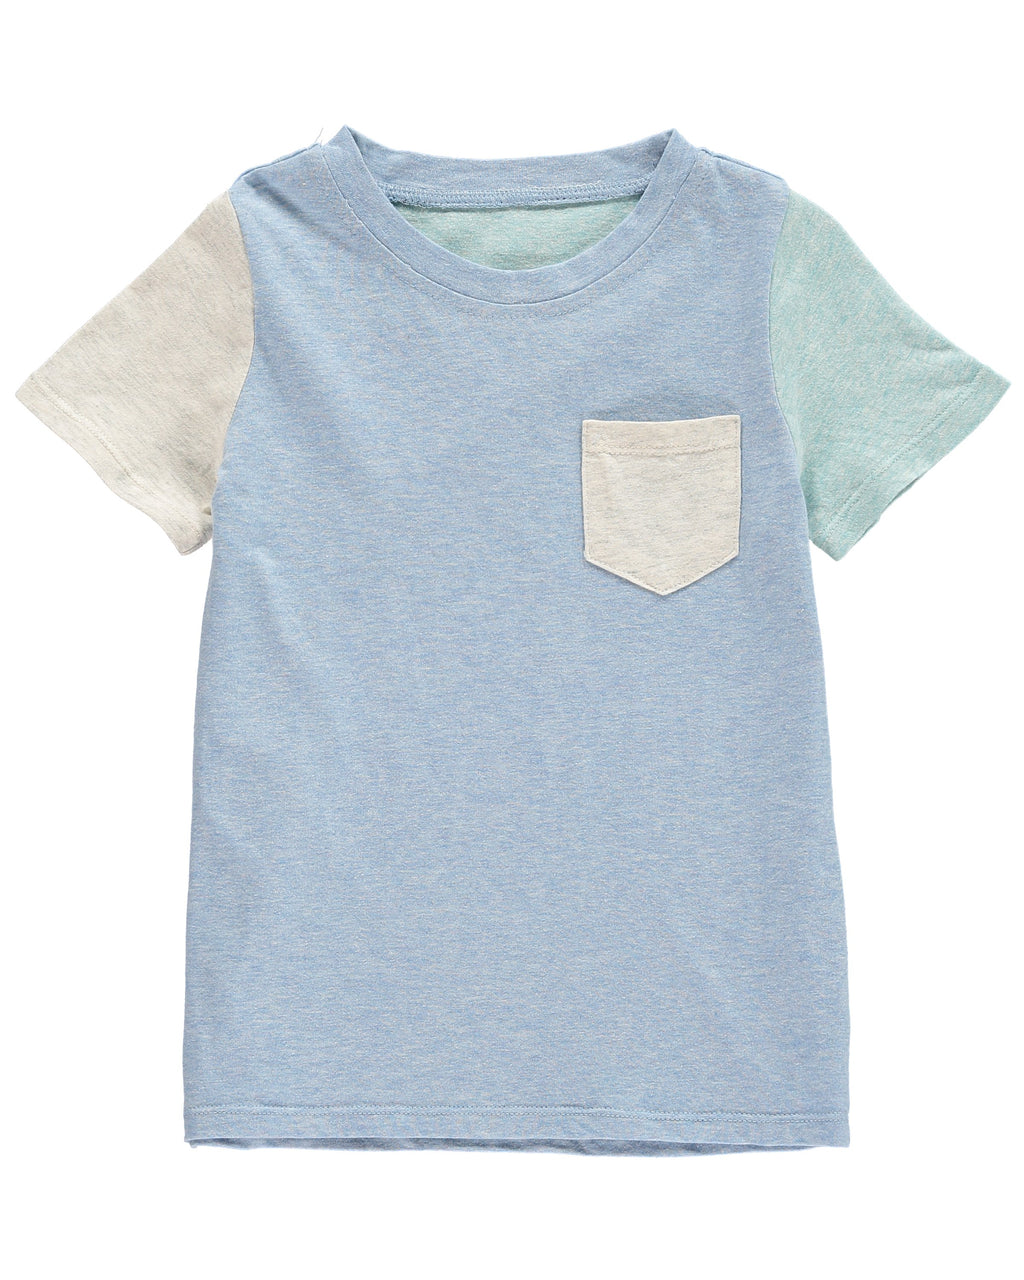 Blue Color Block Tee